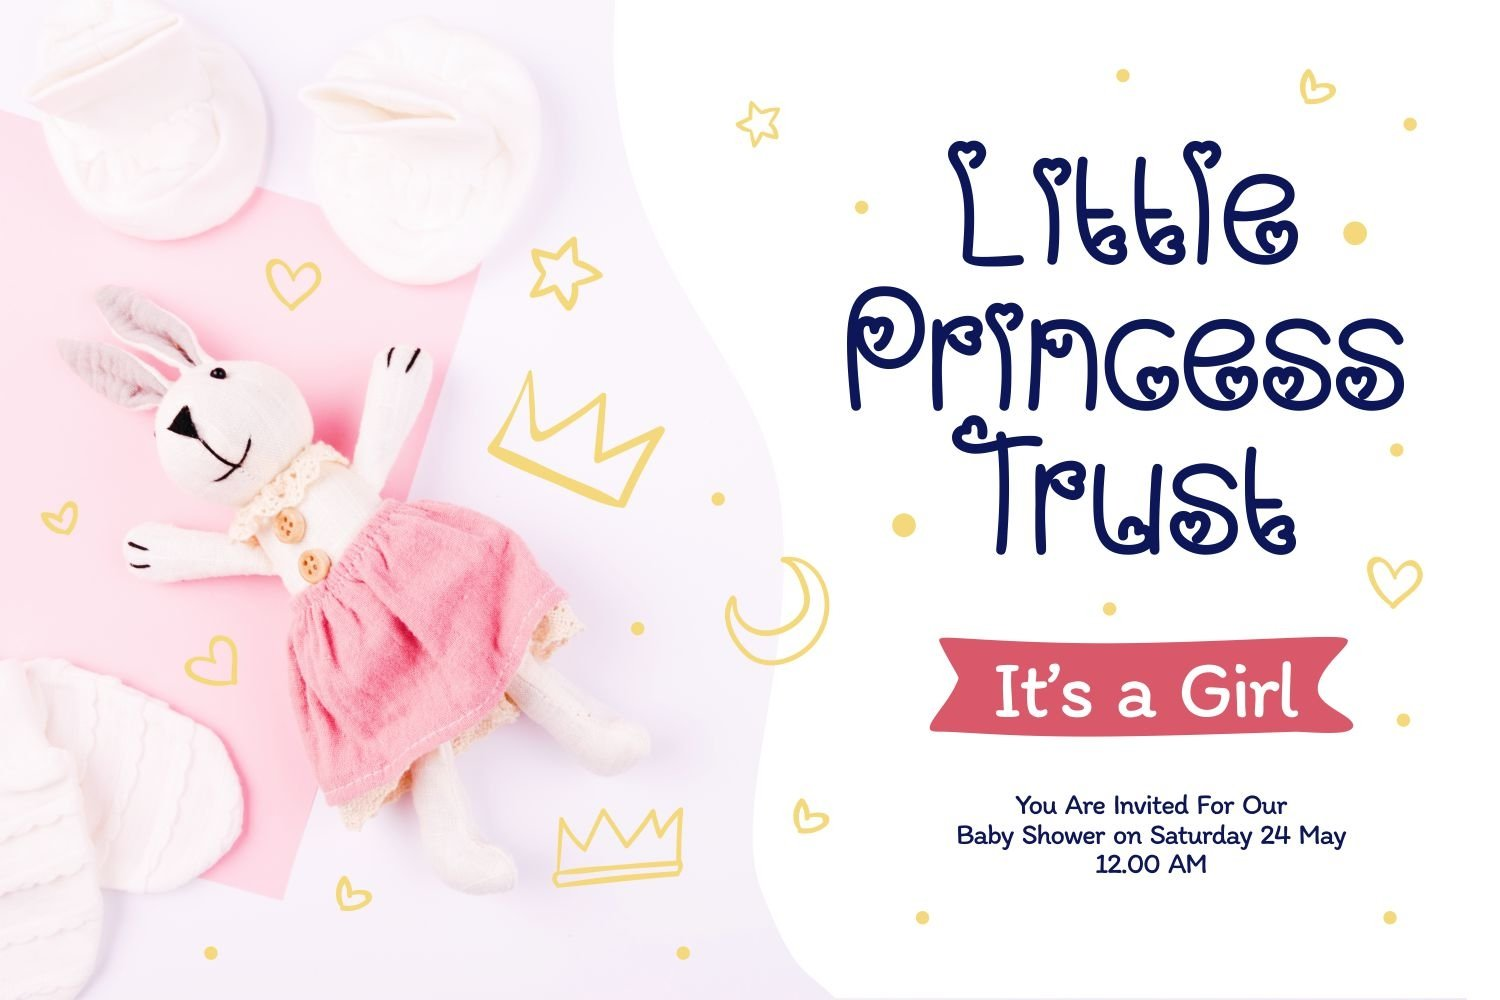 Baby Girl - Cute & Playful Display Font example image 4